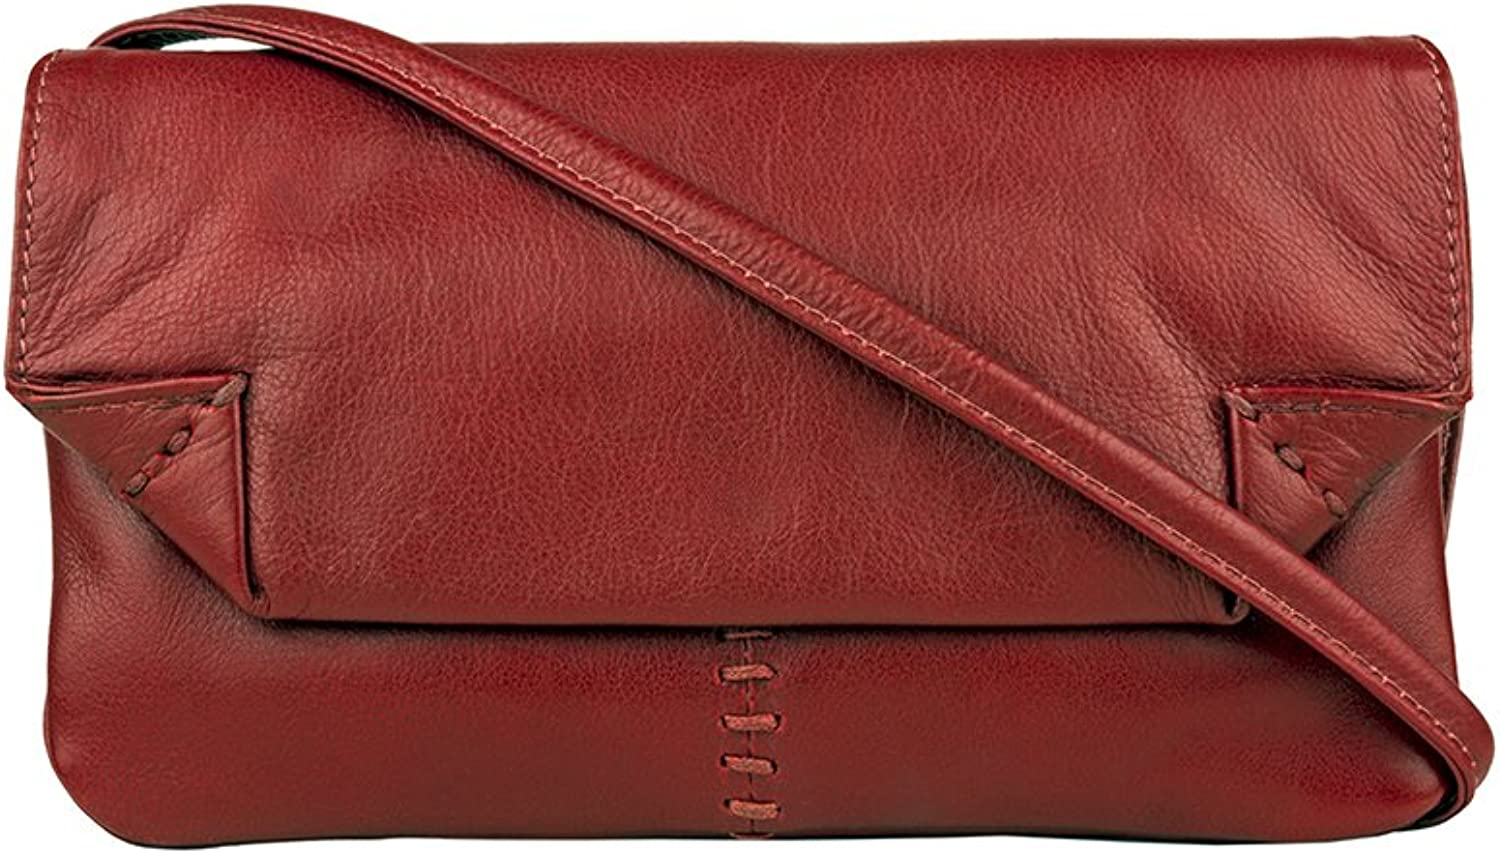 HIDSN Hidesign Stitch Leather Handcrafted Cross Body Bag, Red, International CarryOn